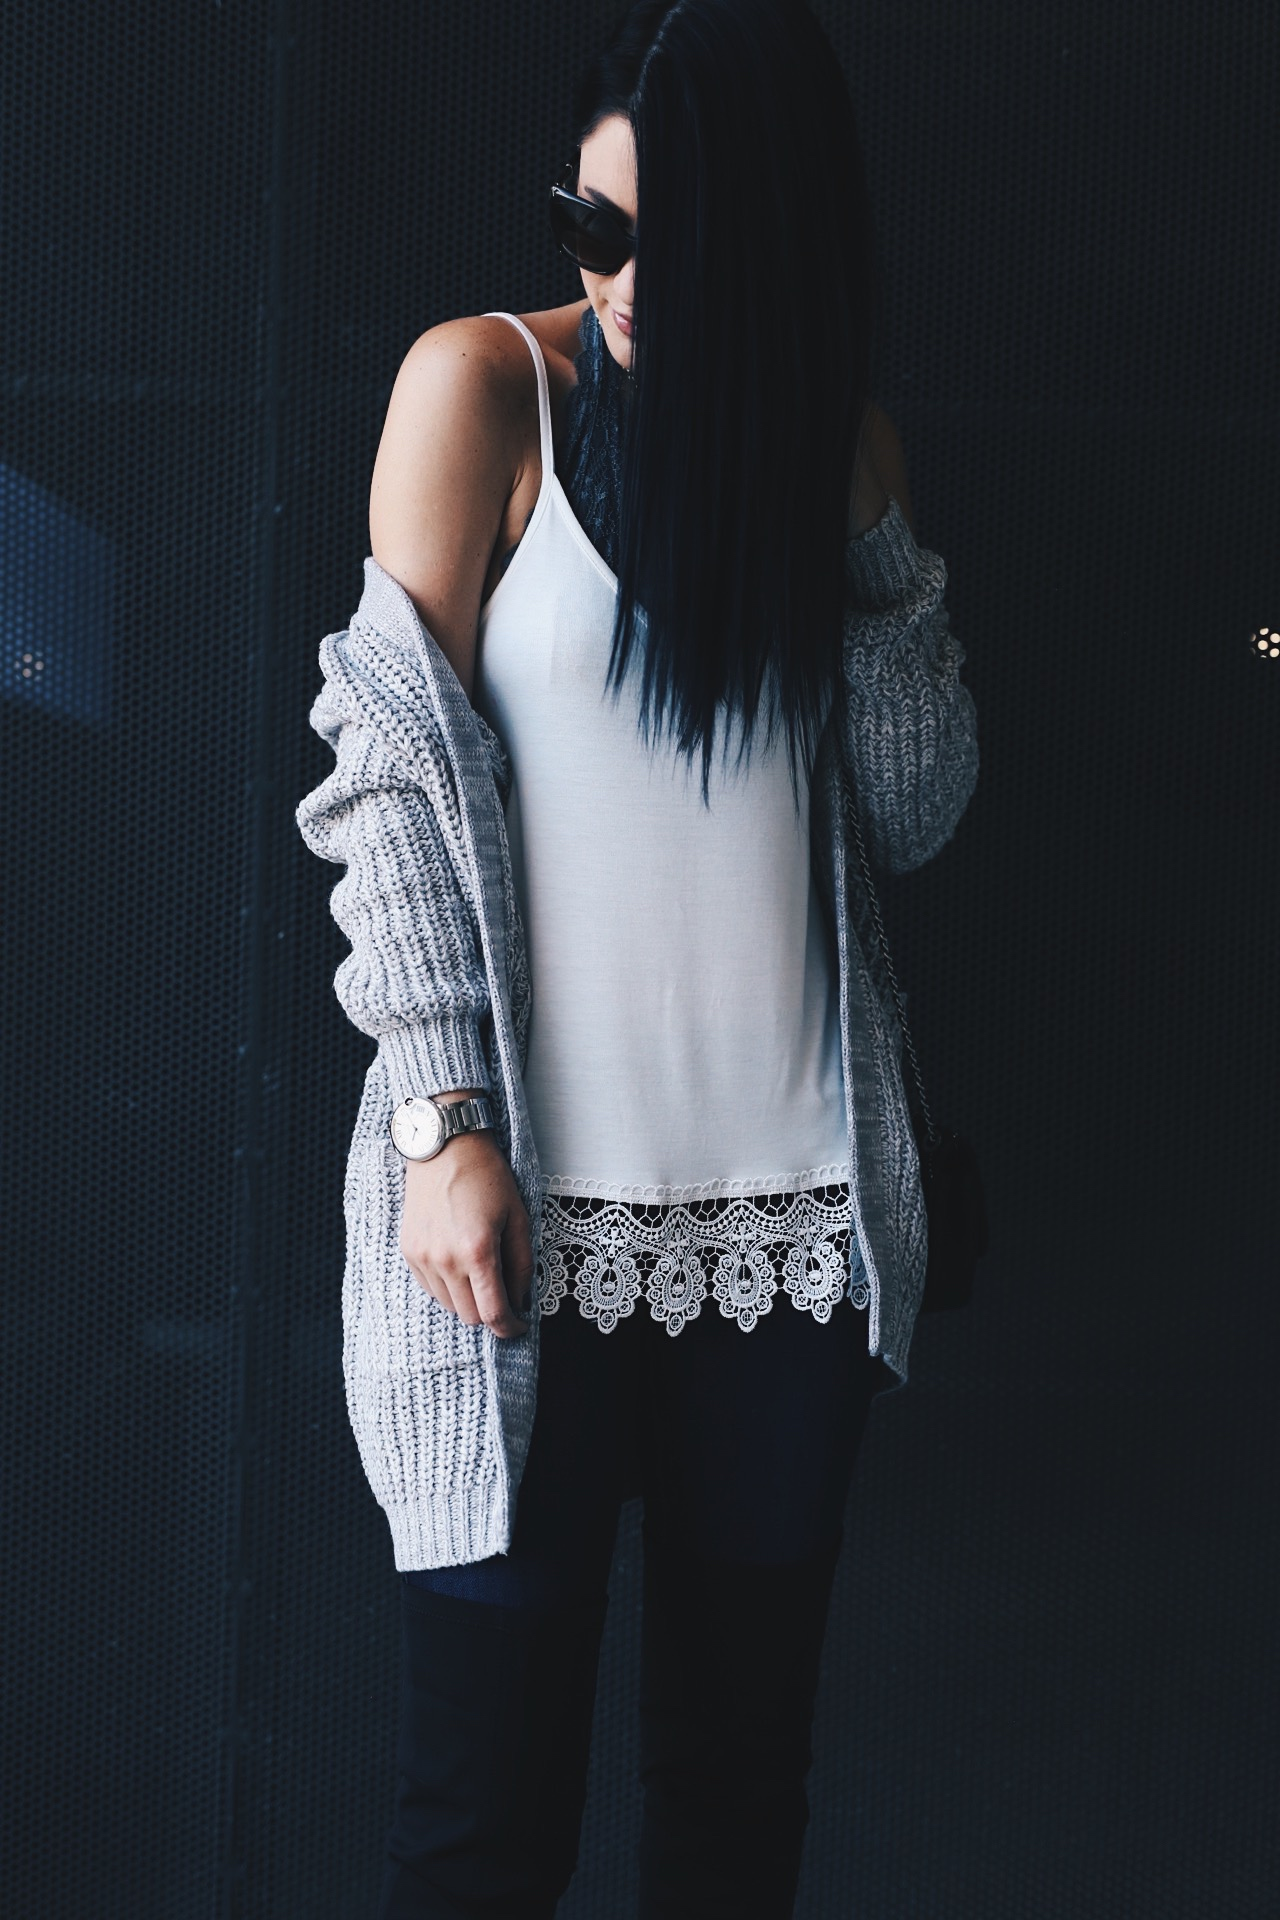 Budget Friendly Fall Layers   layering for fall   fall layers on a budget   budget friendly fall fashion   fall fashion tips   fall outfit ideas   fall style tips   what to wear for fall   cool weather fashion   fashion for fall   style tips for fall   outfit ideas for fall    Dressed to Kill